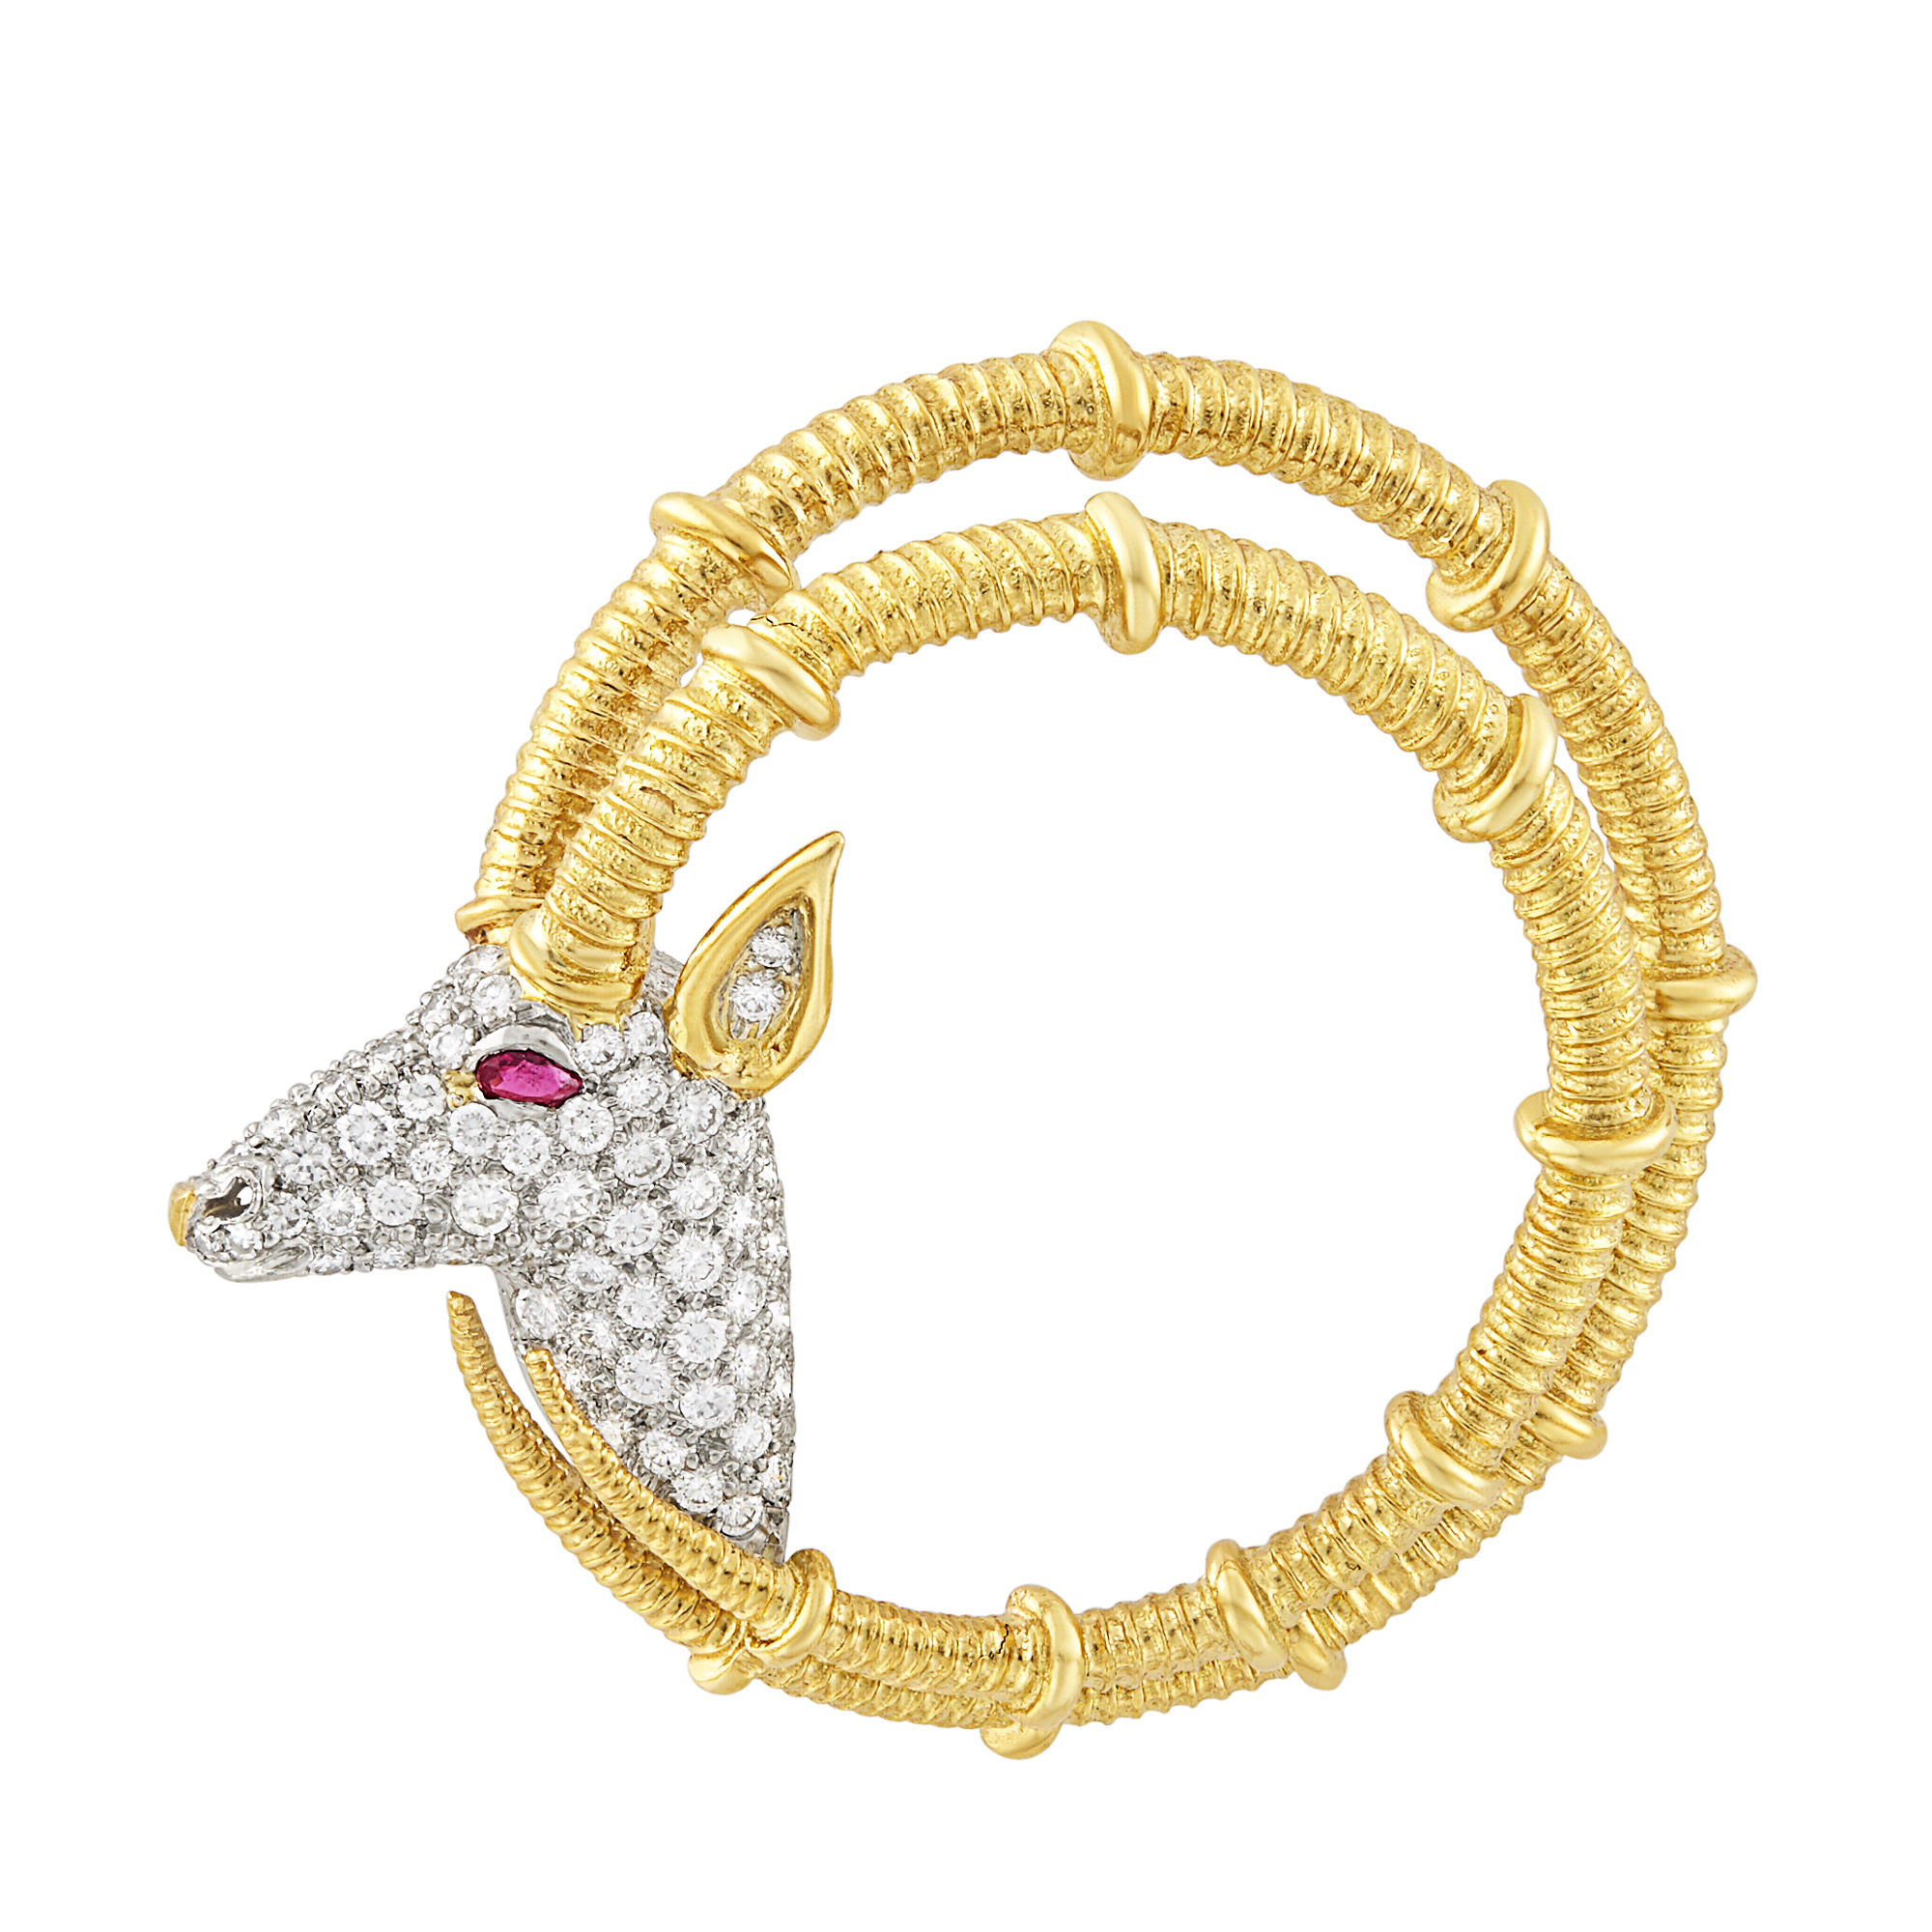 Lot image - Gold, Platinum, Diamond and Ruby Ibex Brooch, Tiffany & Co., Schlumberger